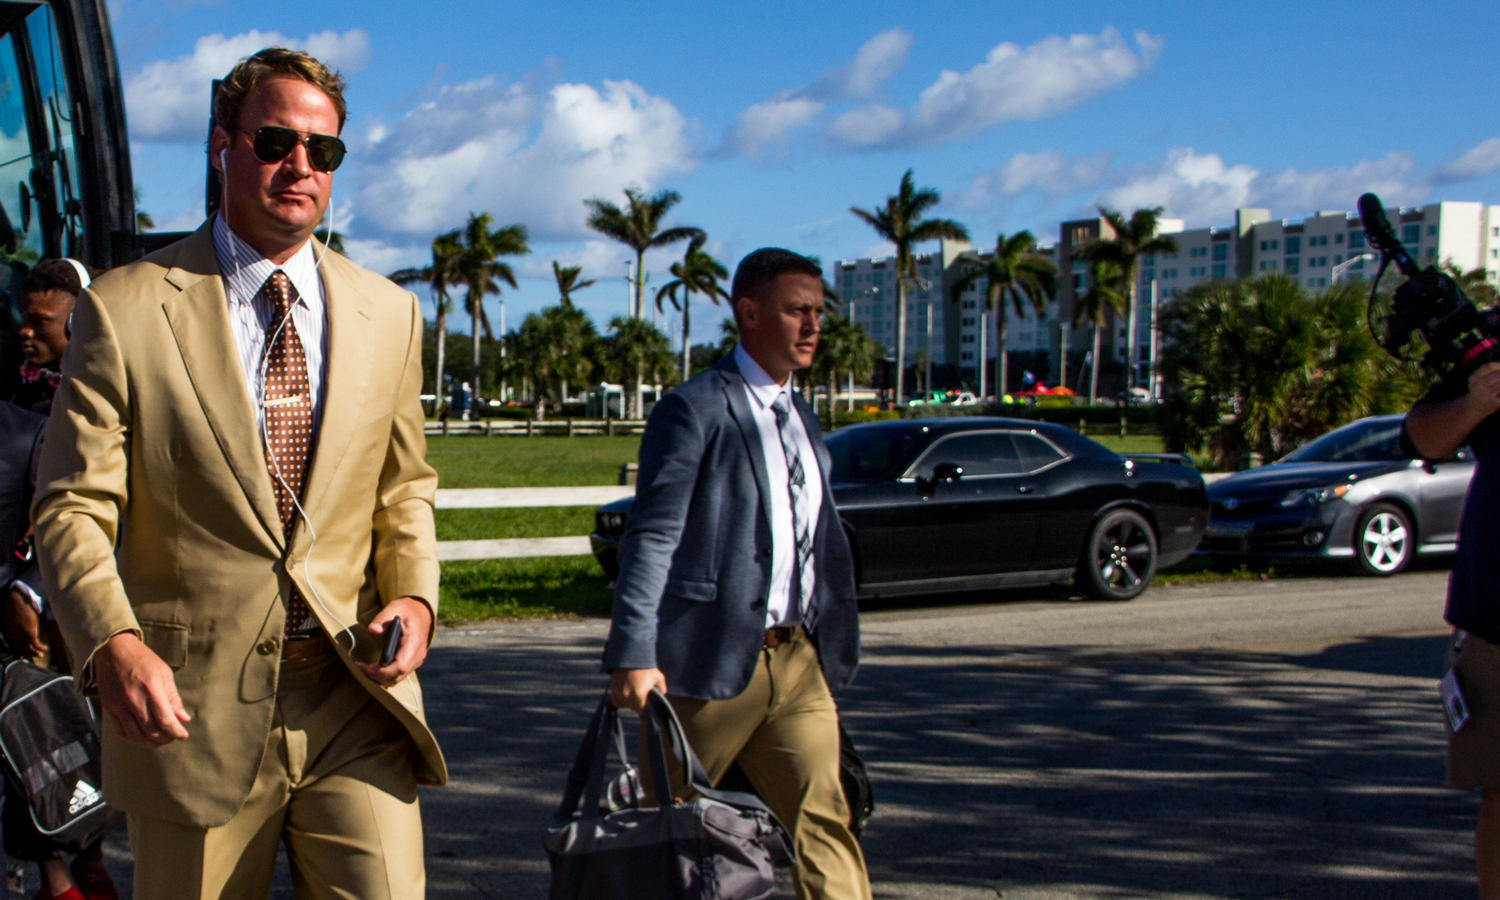 FAU head coach Lane Kiffin walks off the team bus before the team's Nov. 3 game versus Marshall. Lauren Sopourn | Staff Photographer